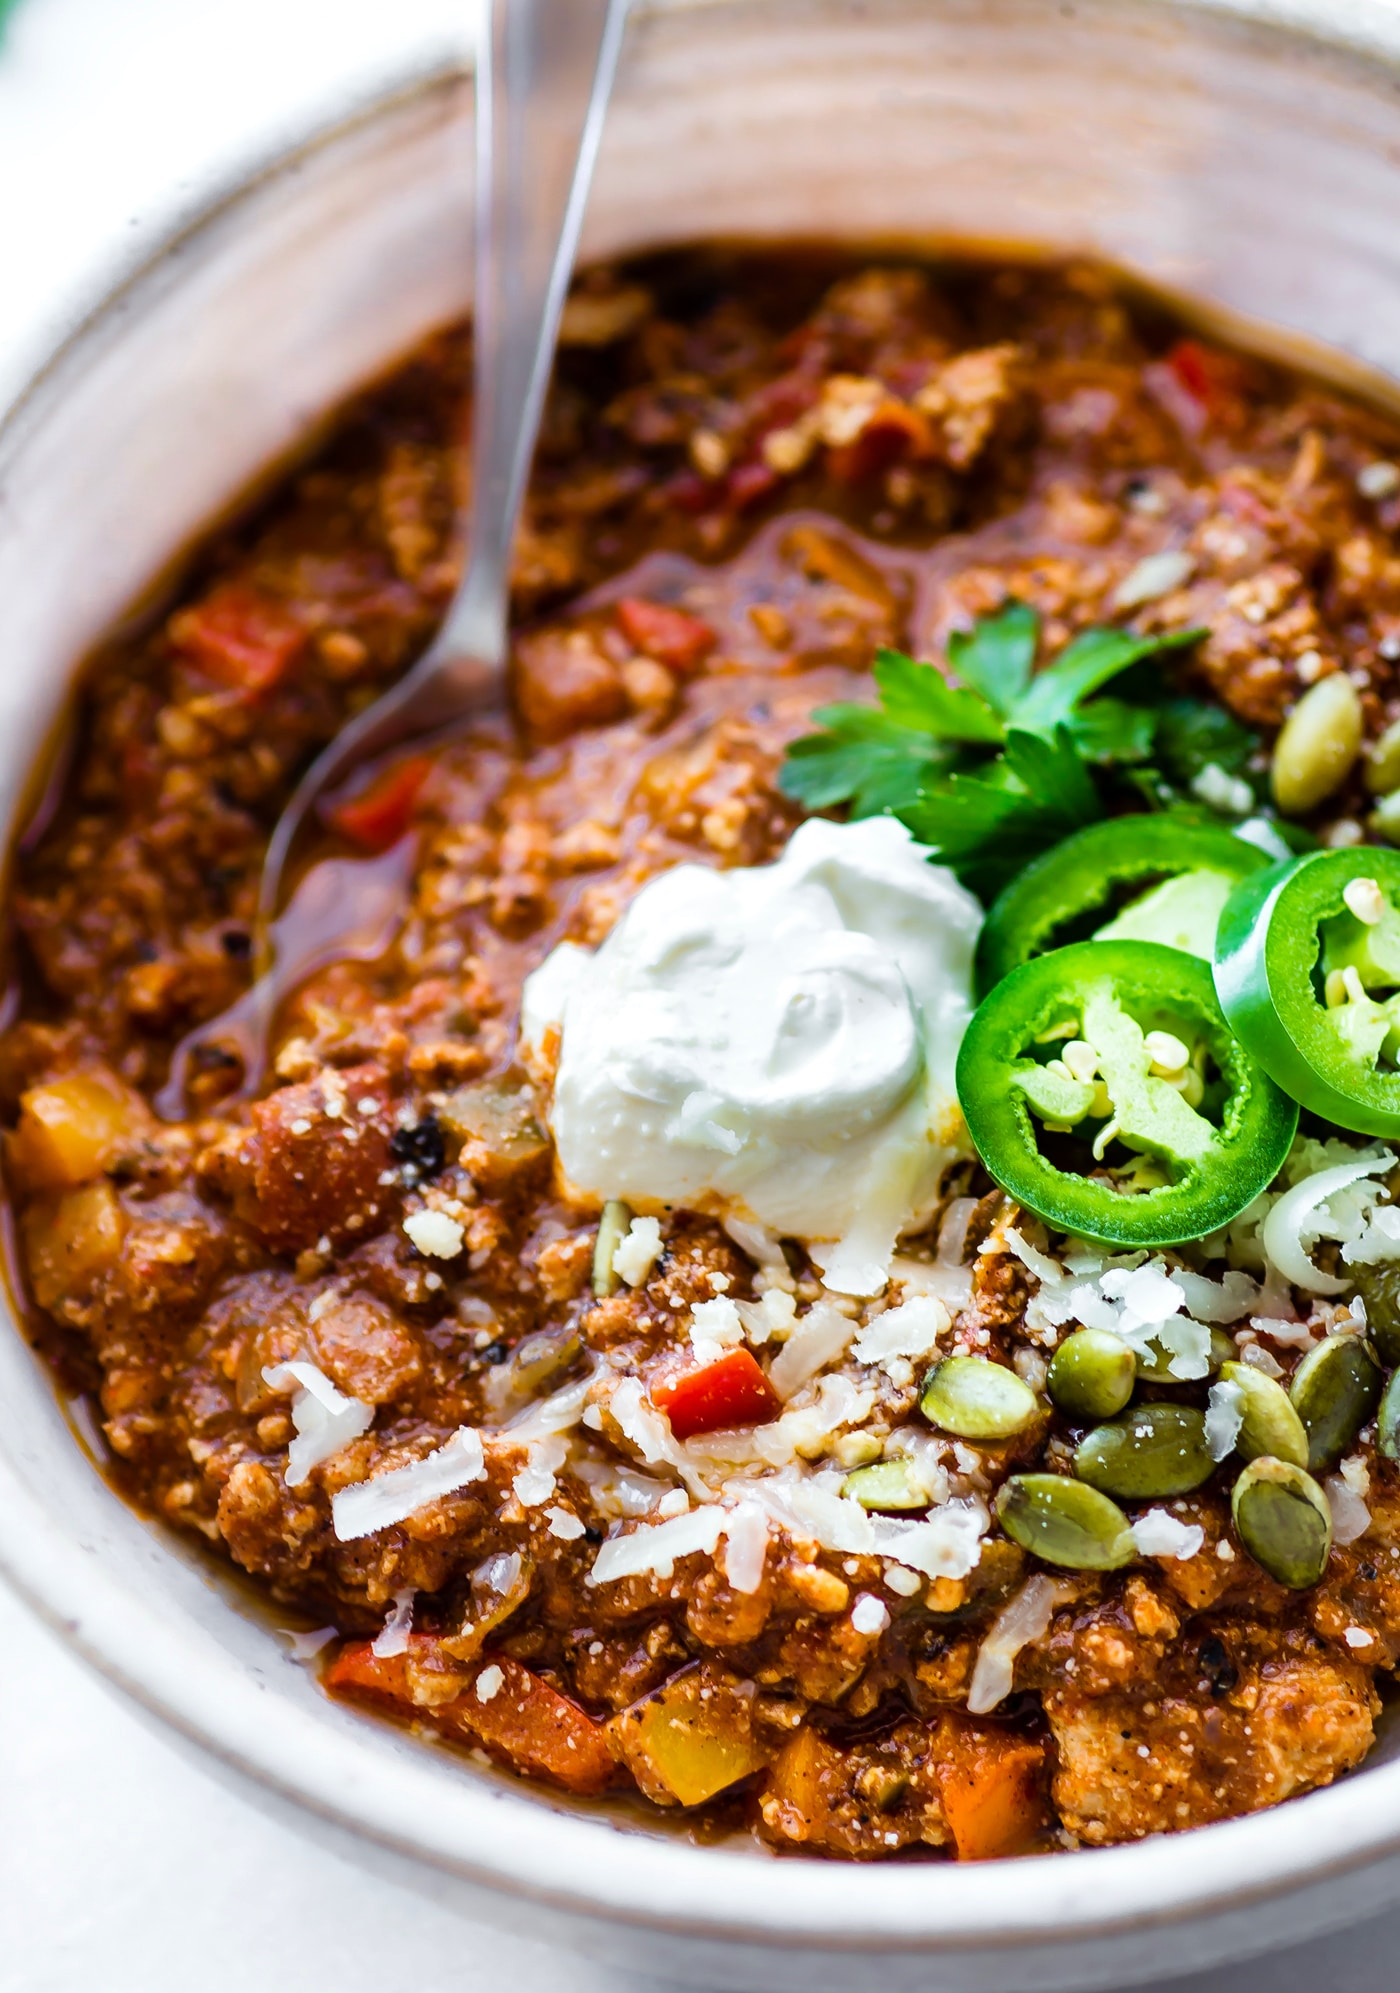 A Turkey Chili with a Mexican flare! Quick Sweet Potato Mole Turkey that's Paleo friendly, simple to make, and healthy! A hearty Turkey chili made with an easy homemade sweet potato mole sauce. Great to feed a crowd, for meal prep, or to use up those holiday leftovers.